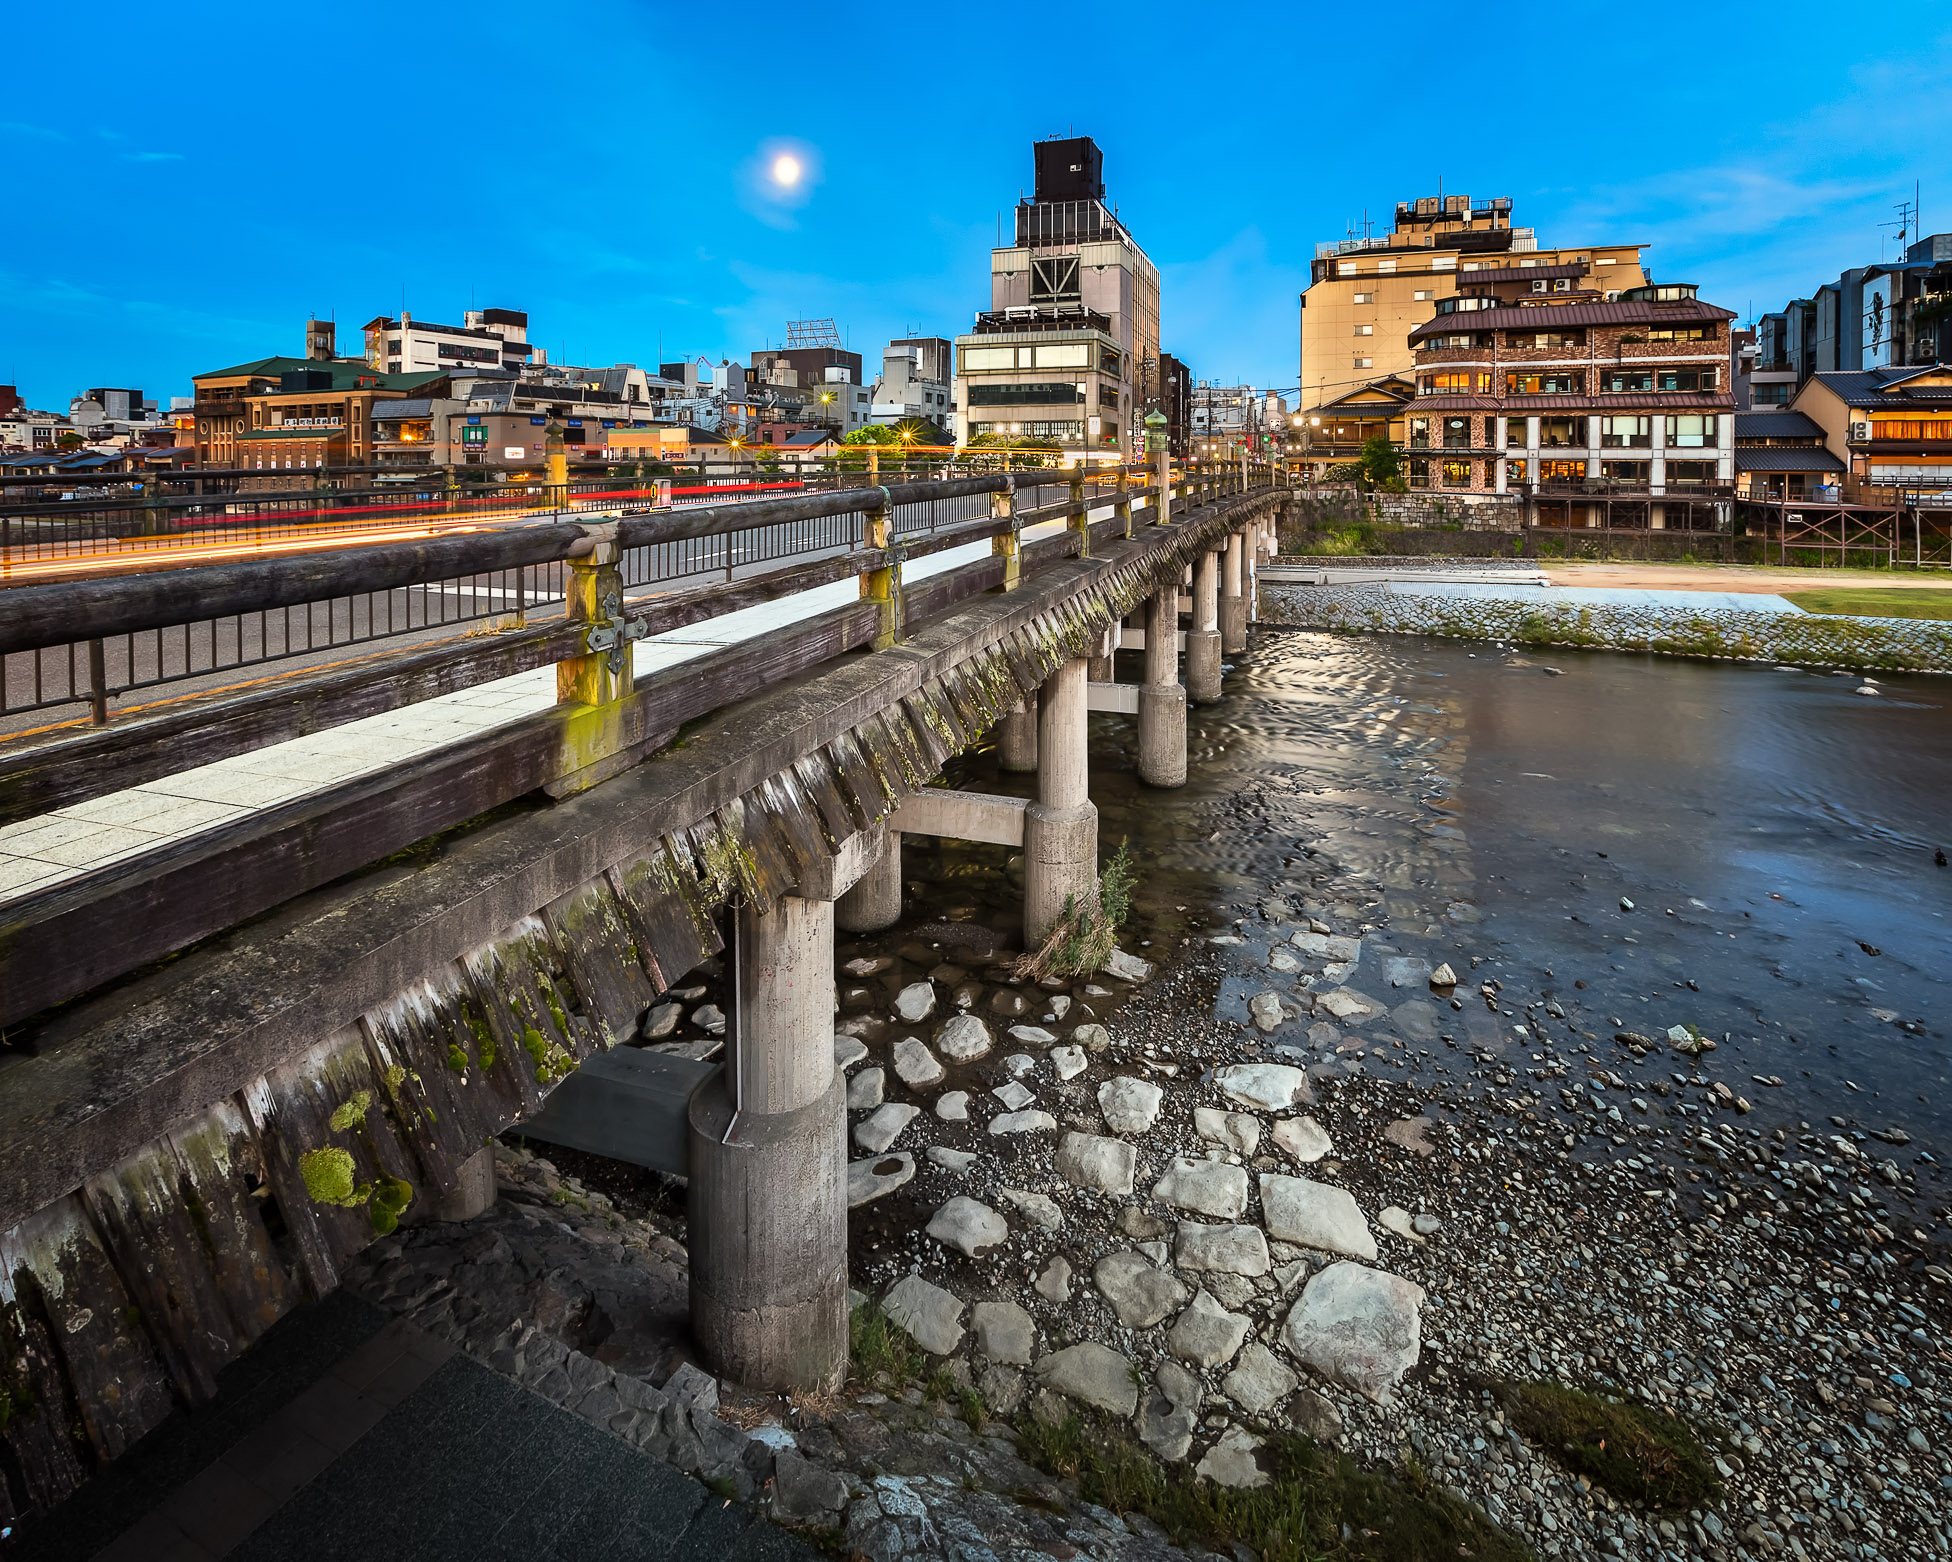 Sanjo Ohashi Bridge and Kamo River at Dawn, Kyoto, Japan